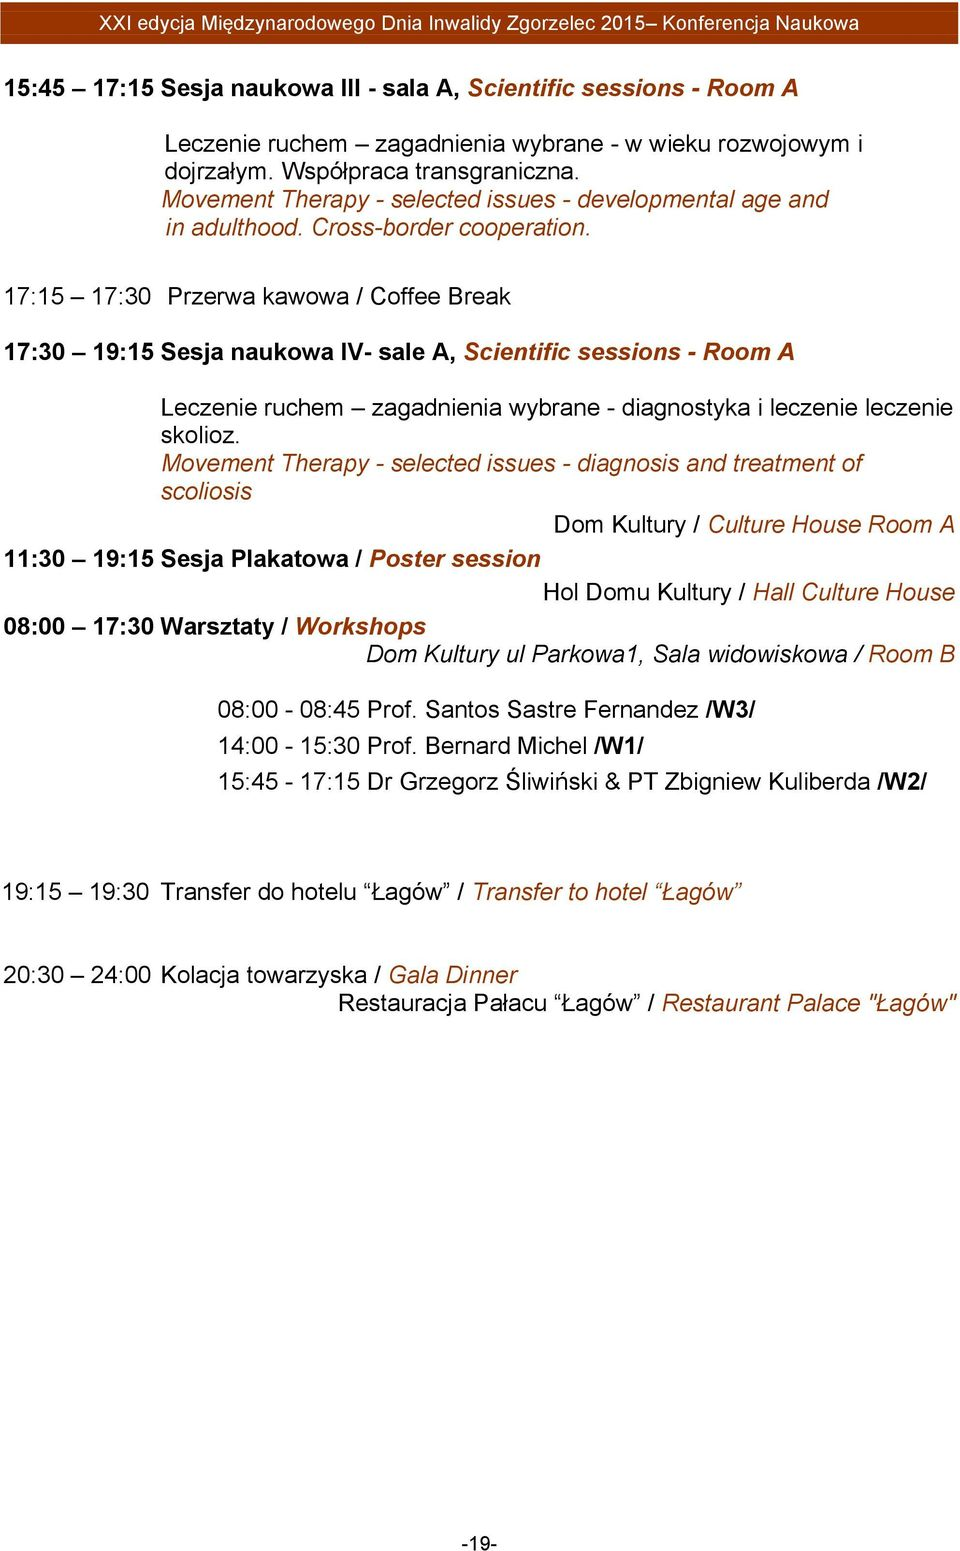 17:15 17:30 Przerwa kawowa / Coffee Break 17:30 19:15 Sesja naukowa IV- sale A, Scientific sessions - Room A Leczenie ruchem zagadnienia wybrane - diagnostyka i leczenie leczenie skolioz.